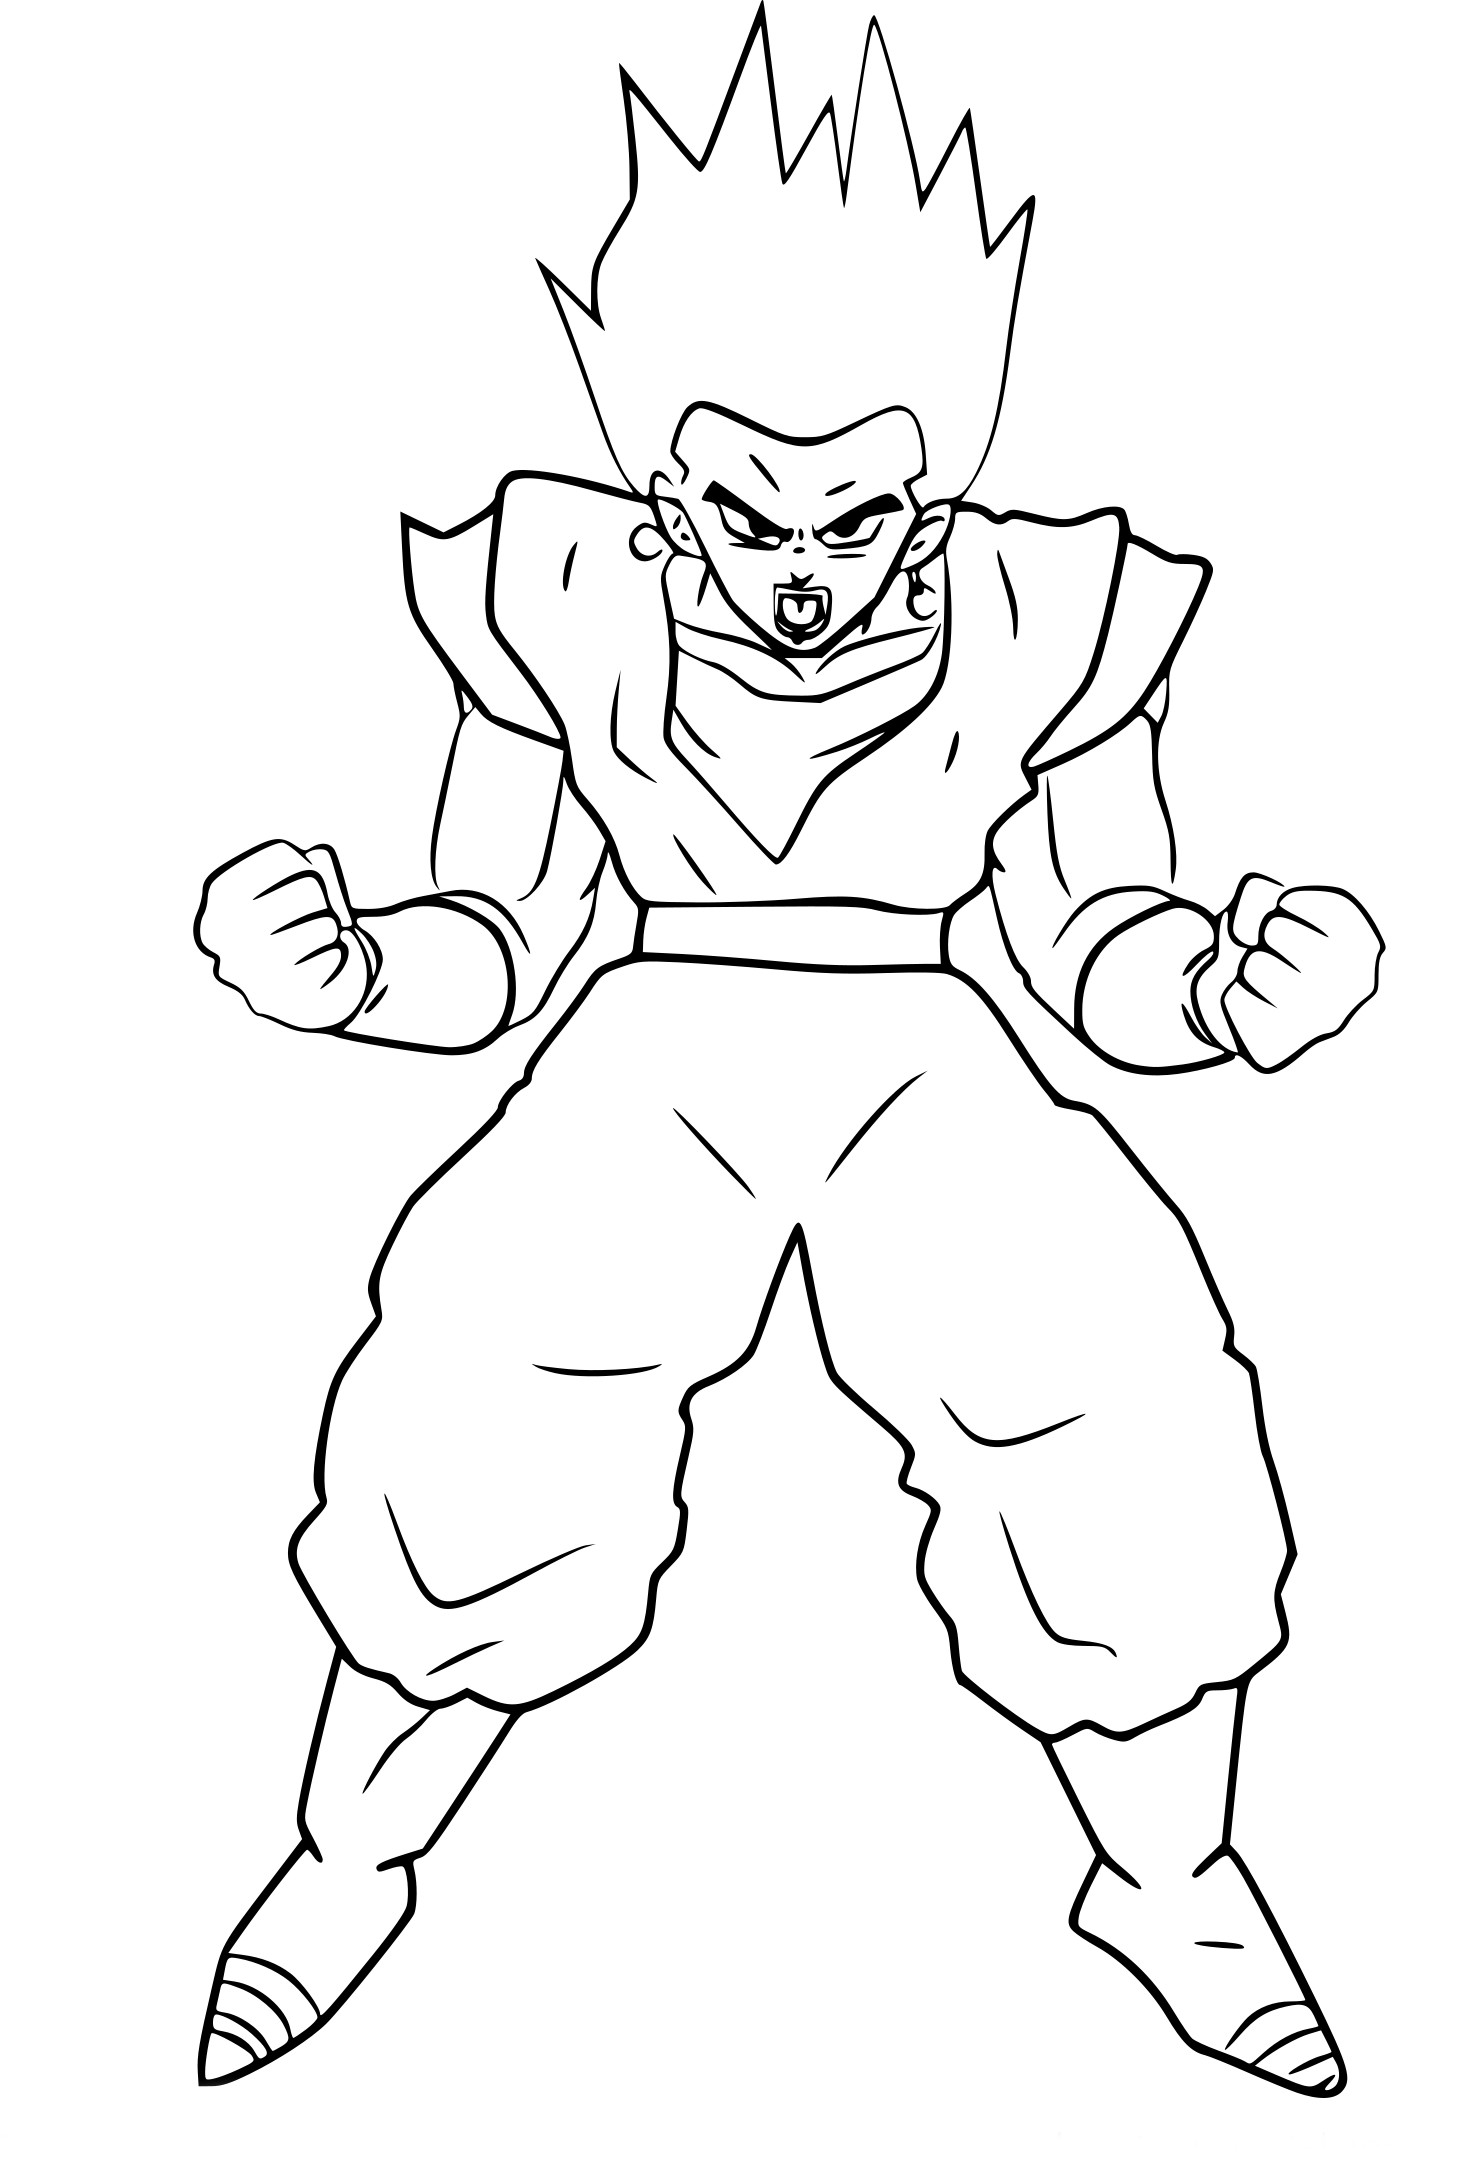 Coloriage vegeto dragon ball z imprimer - Dessin dragon ball z facile ...